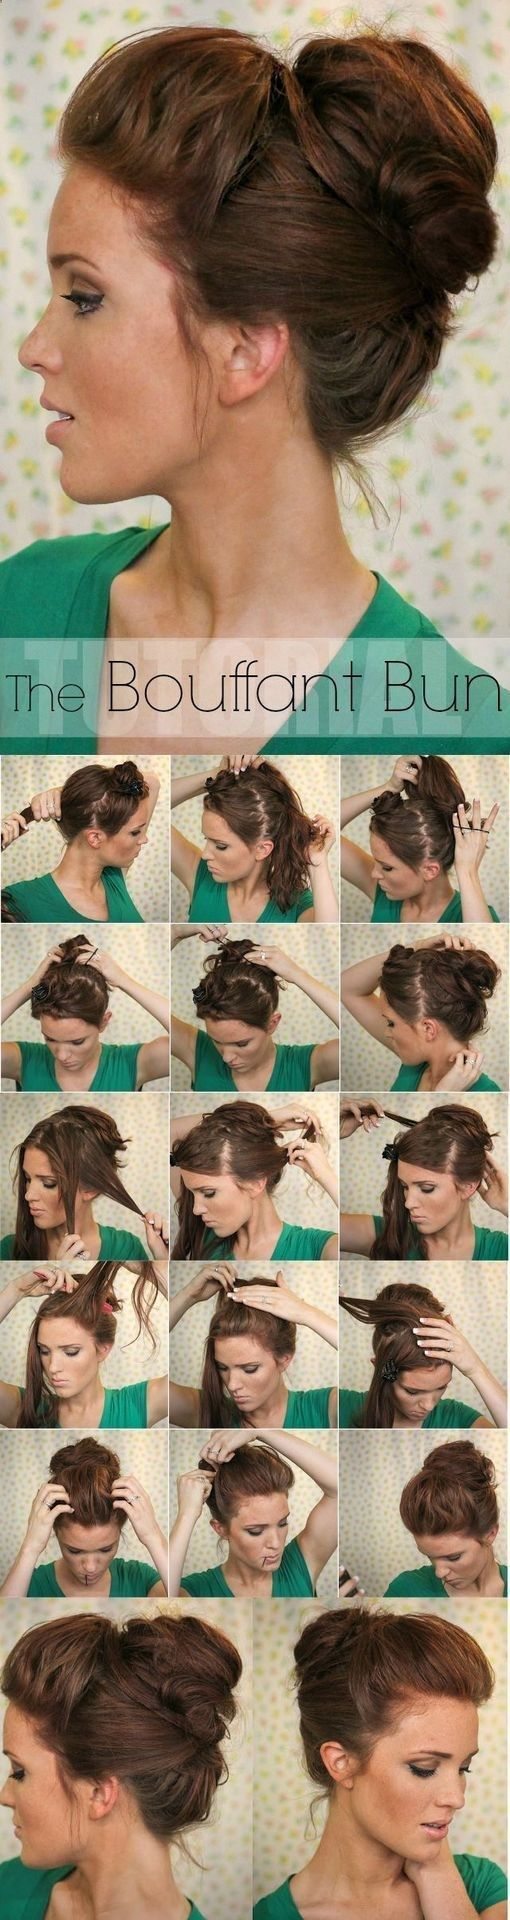 Fashionable hairstyle tutorials for long thick hair easy braid